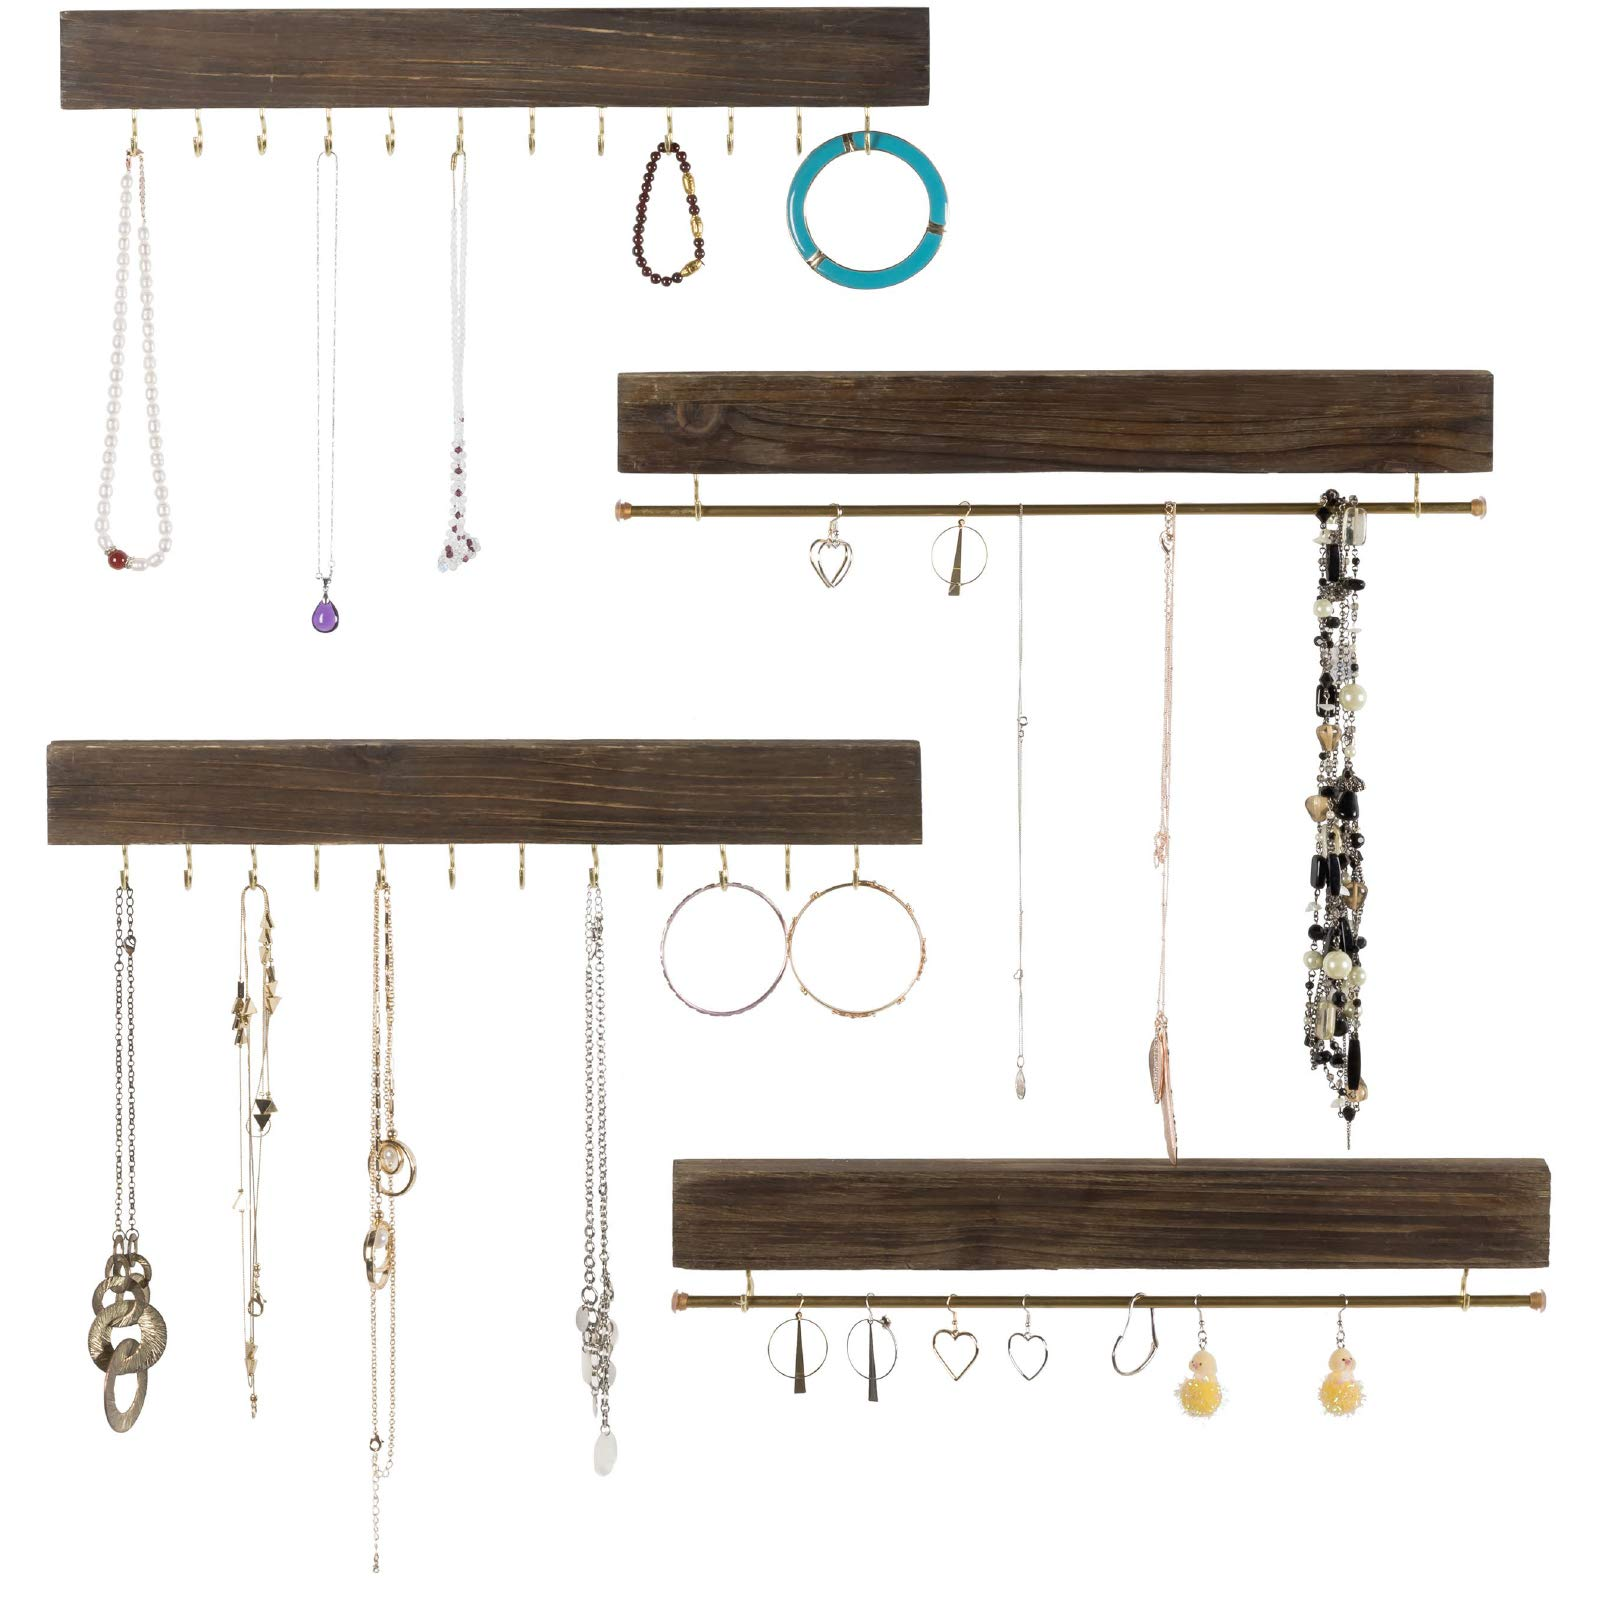 Large Wall Mounted Jewelry Organizer. 17'' Inches Wide Rustic Display with Hooks for Hanging Rings, Earrings, Necklace Holder, Bracelet Hanger. Shabby Chic Wood Home Decor (Set of 4 - Dark Brown)